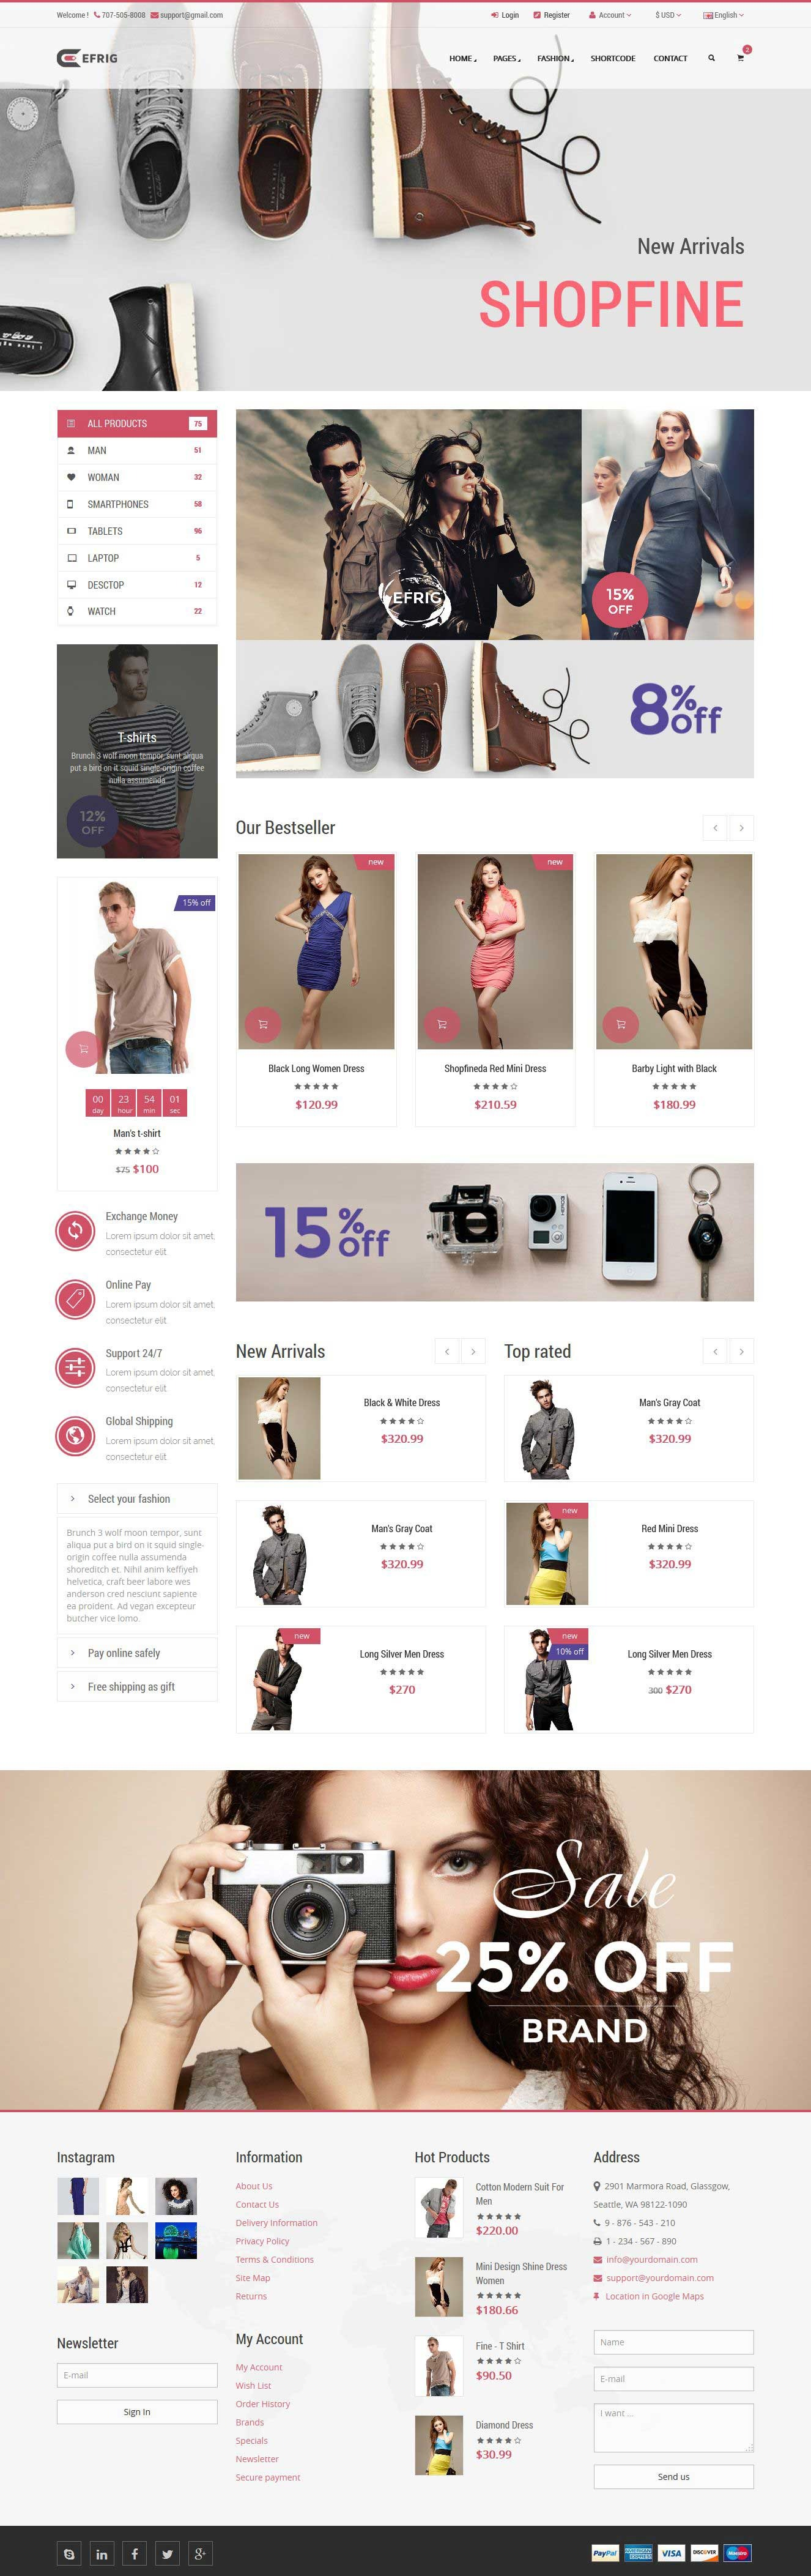 Shopfine - Responsive E-Commerce Template